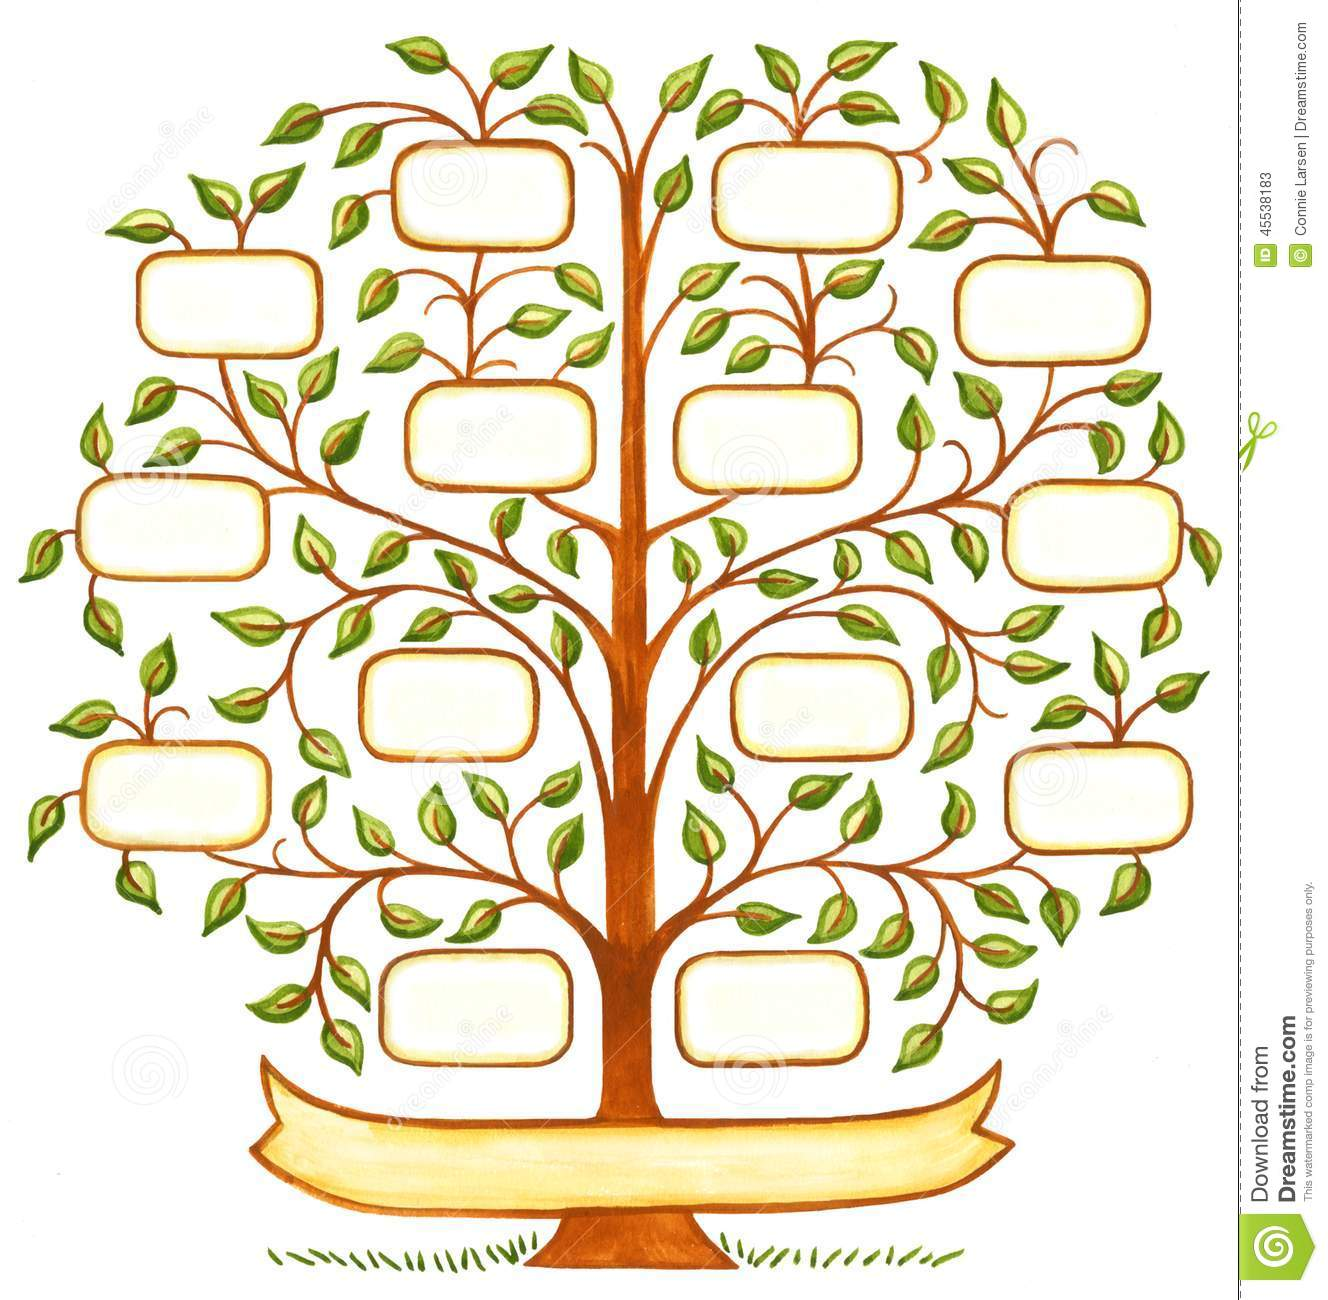 Arbre g n alogique peint la main illustration stock - Arbre genealogique avec photo ...